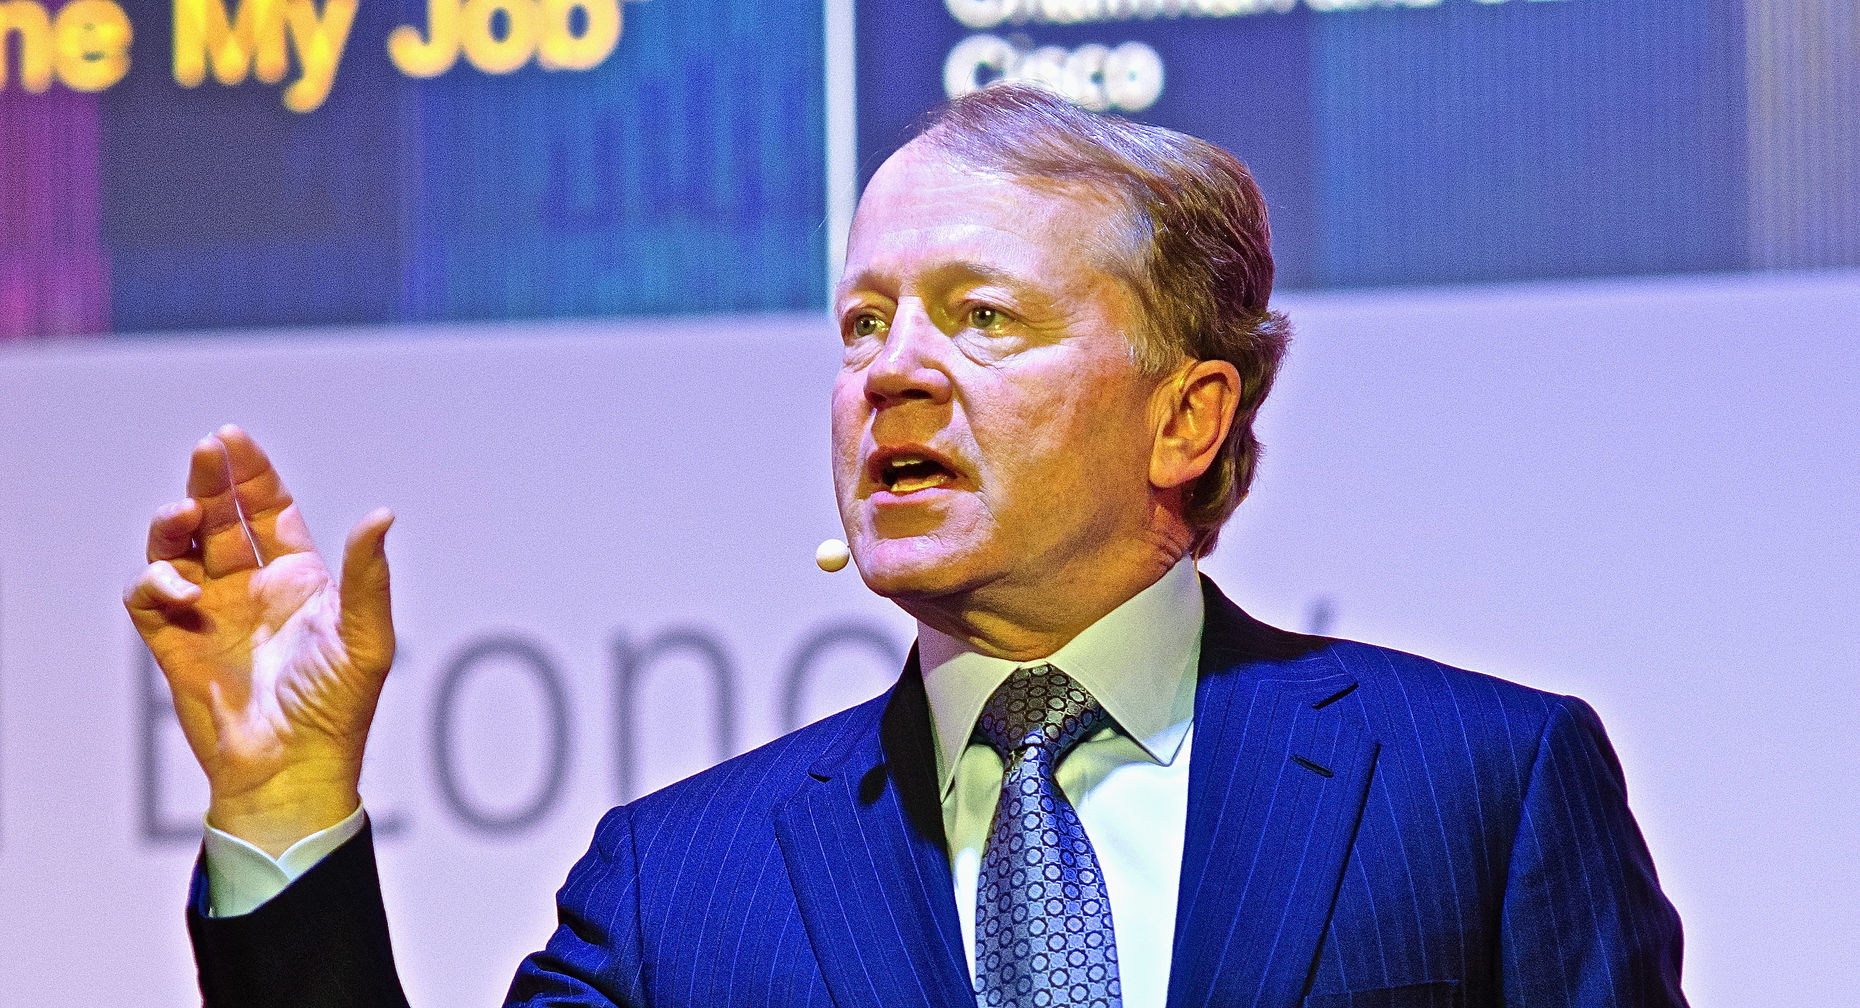 John Chambers, Cisco CEO, speaking last year at a conference in Spain. Source: Shutterstock.